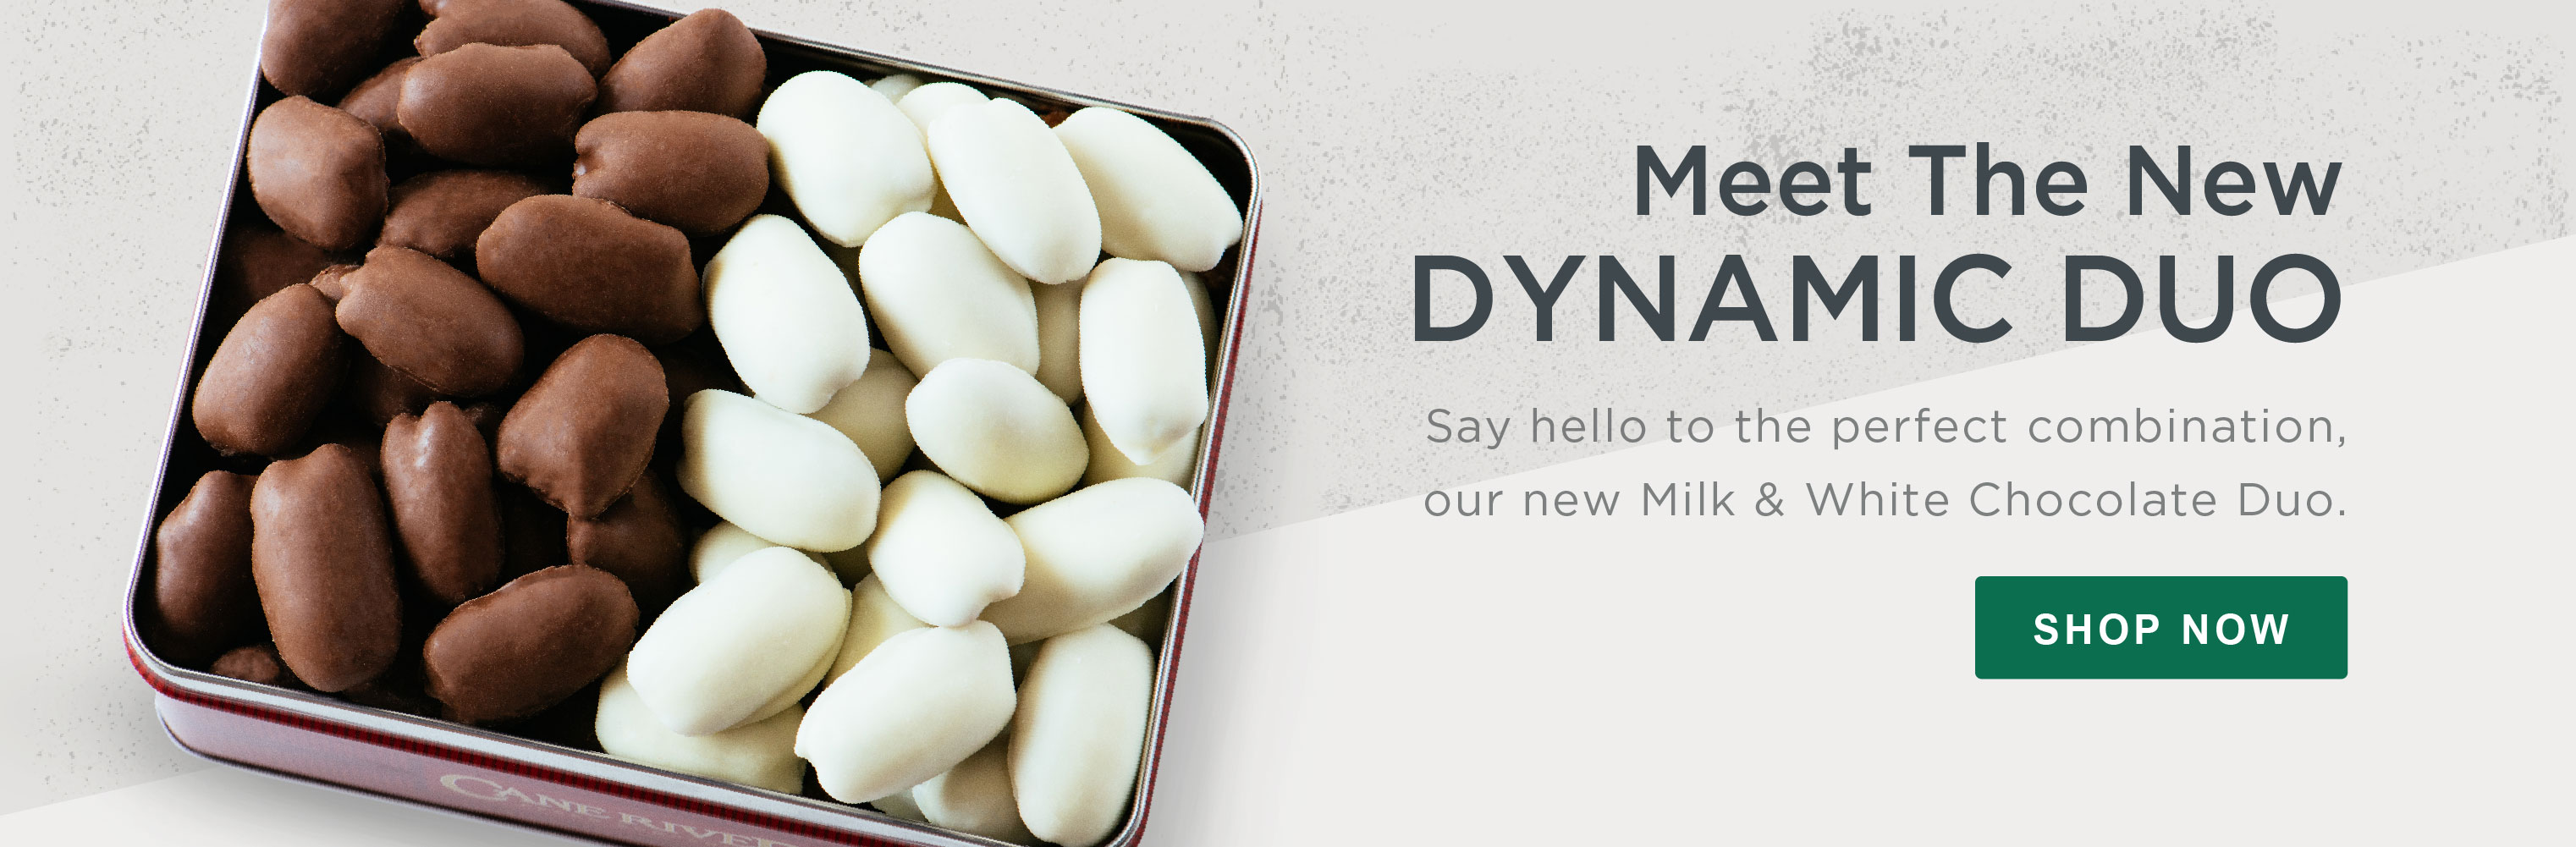 Meet The New Dynamic Duo. Say hello to the perfect combination, our new Milk & White Chocolate Duo.  Shop Now»